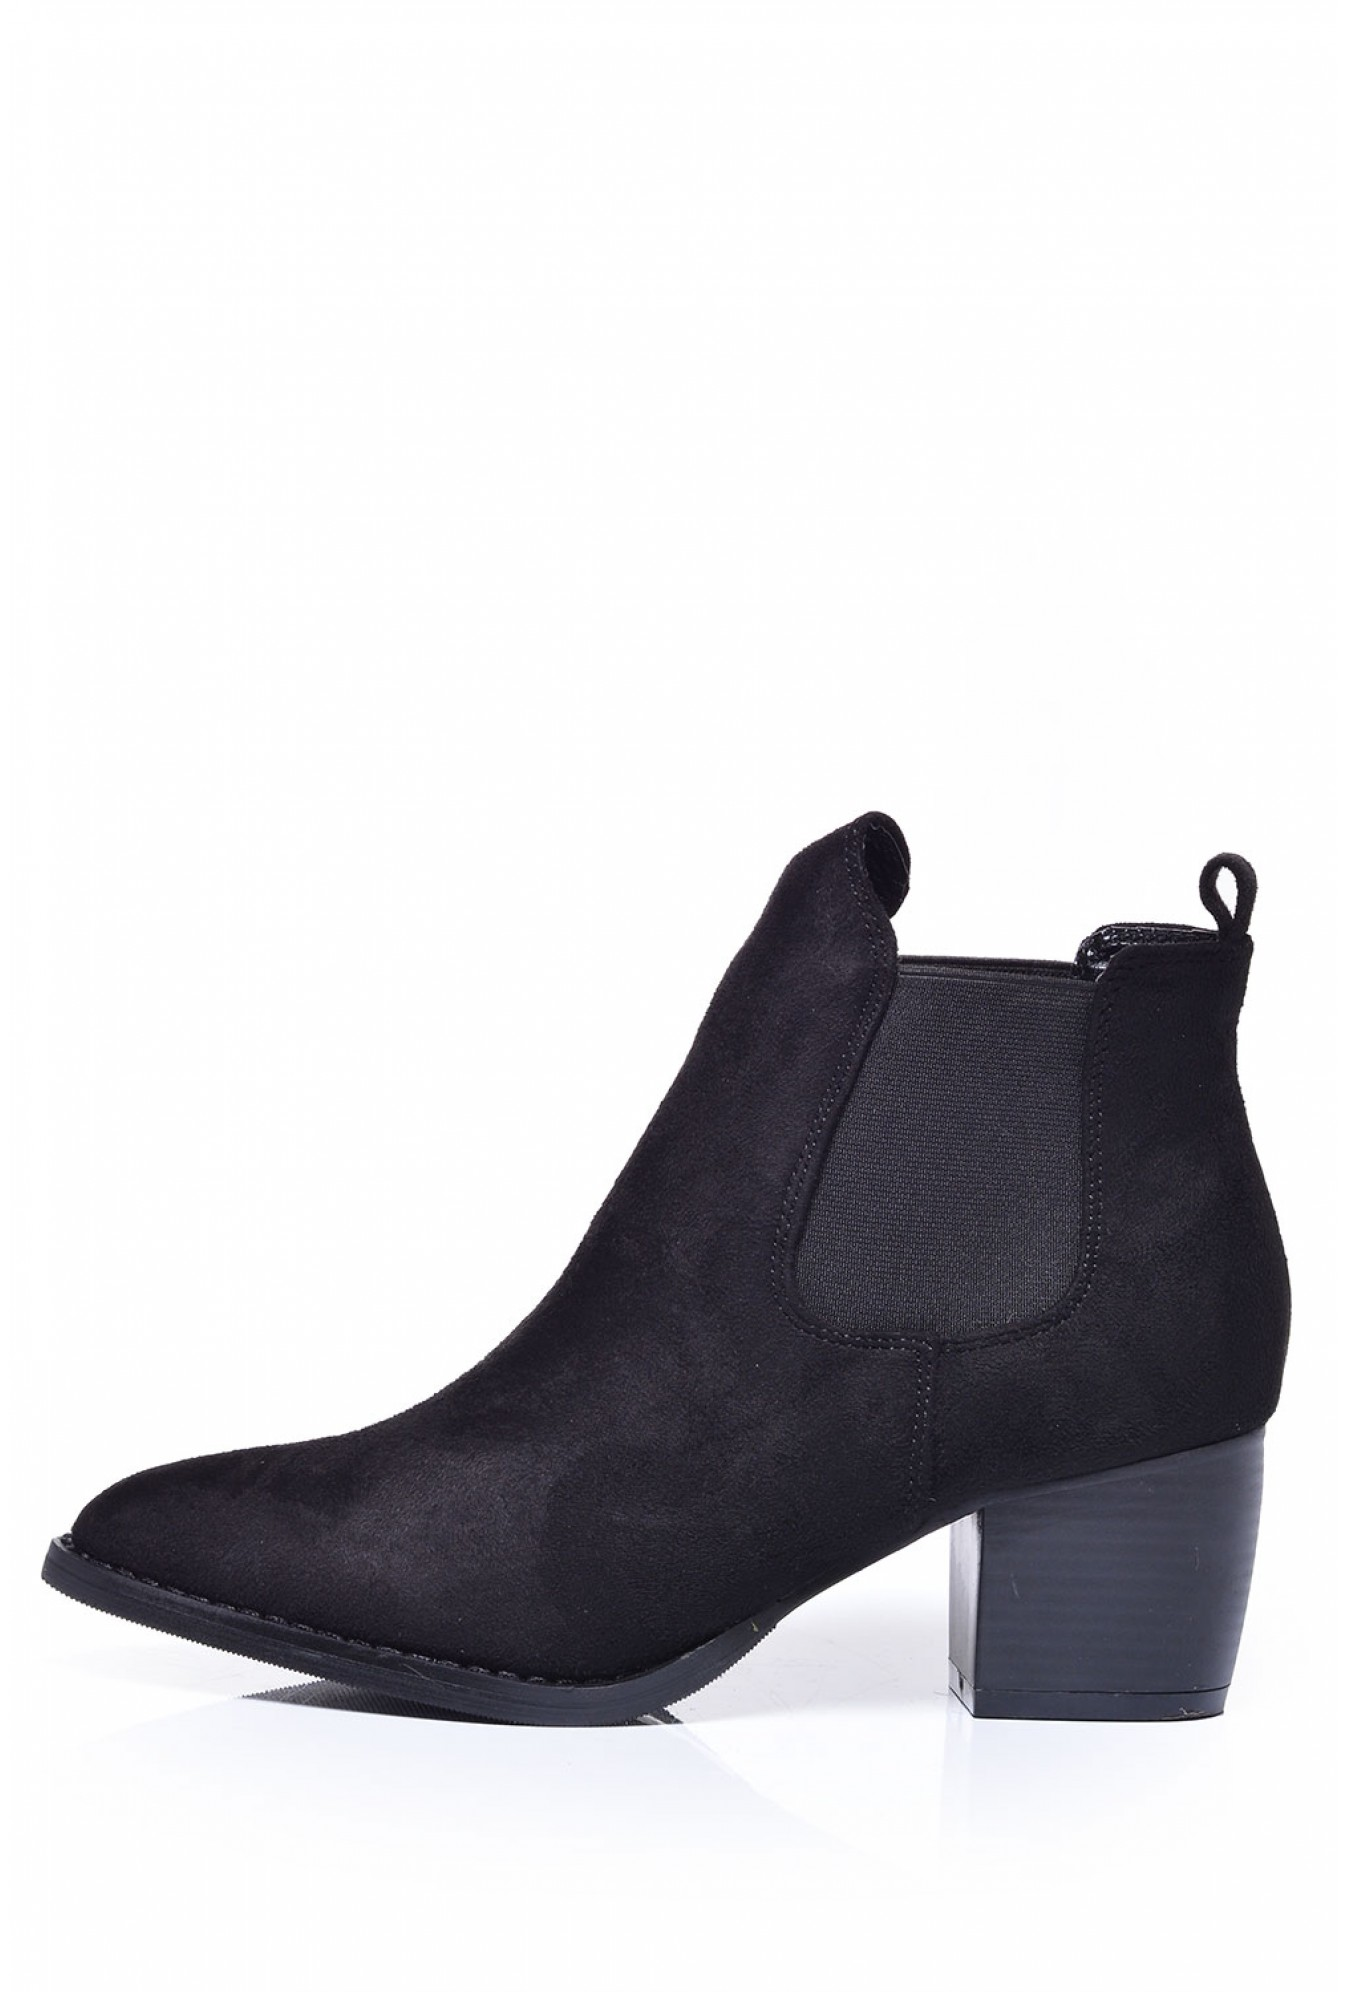 9607e116e0 No Doubt Paula Pointed Toe Ankle Boots in Black Suede | iCLOTHING